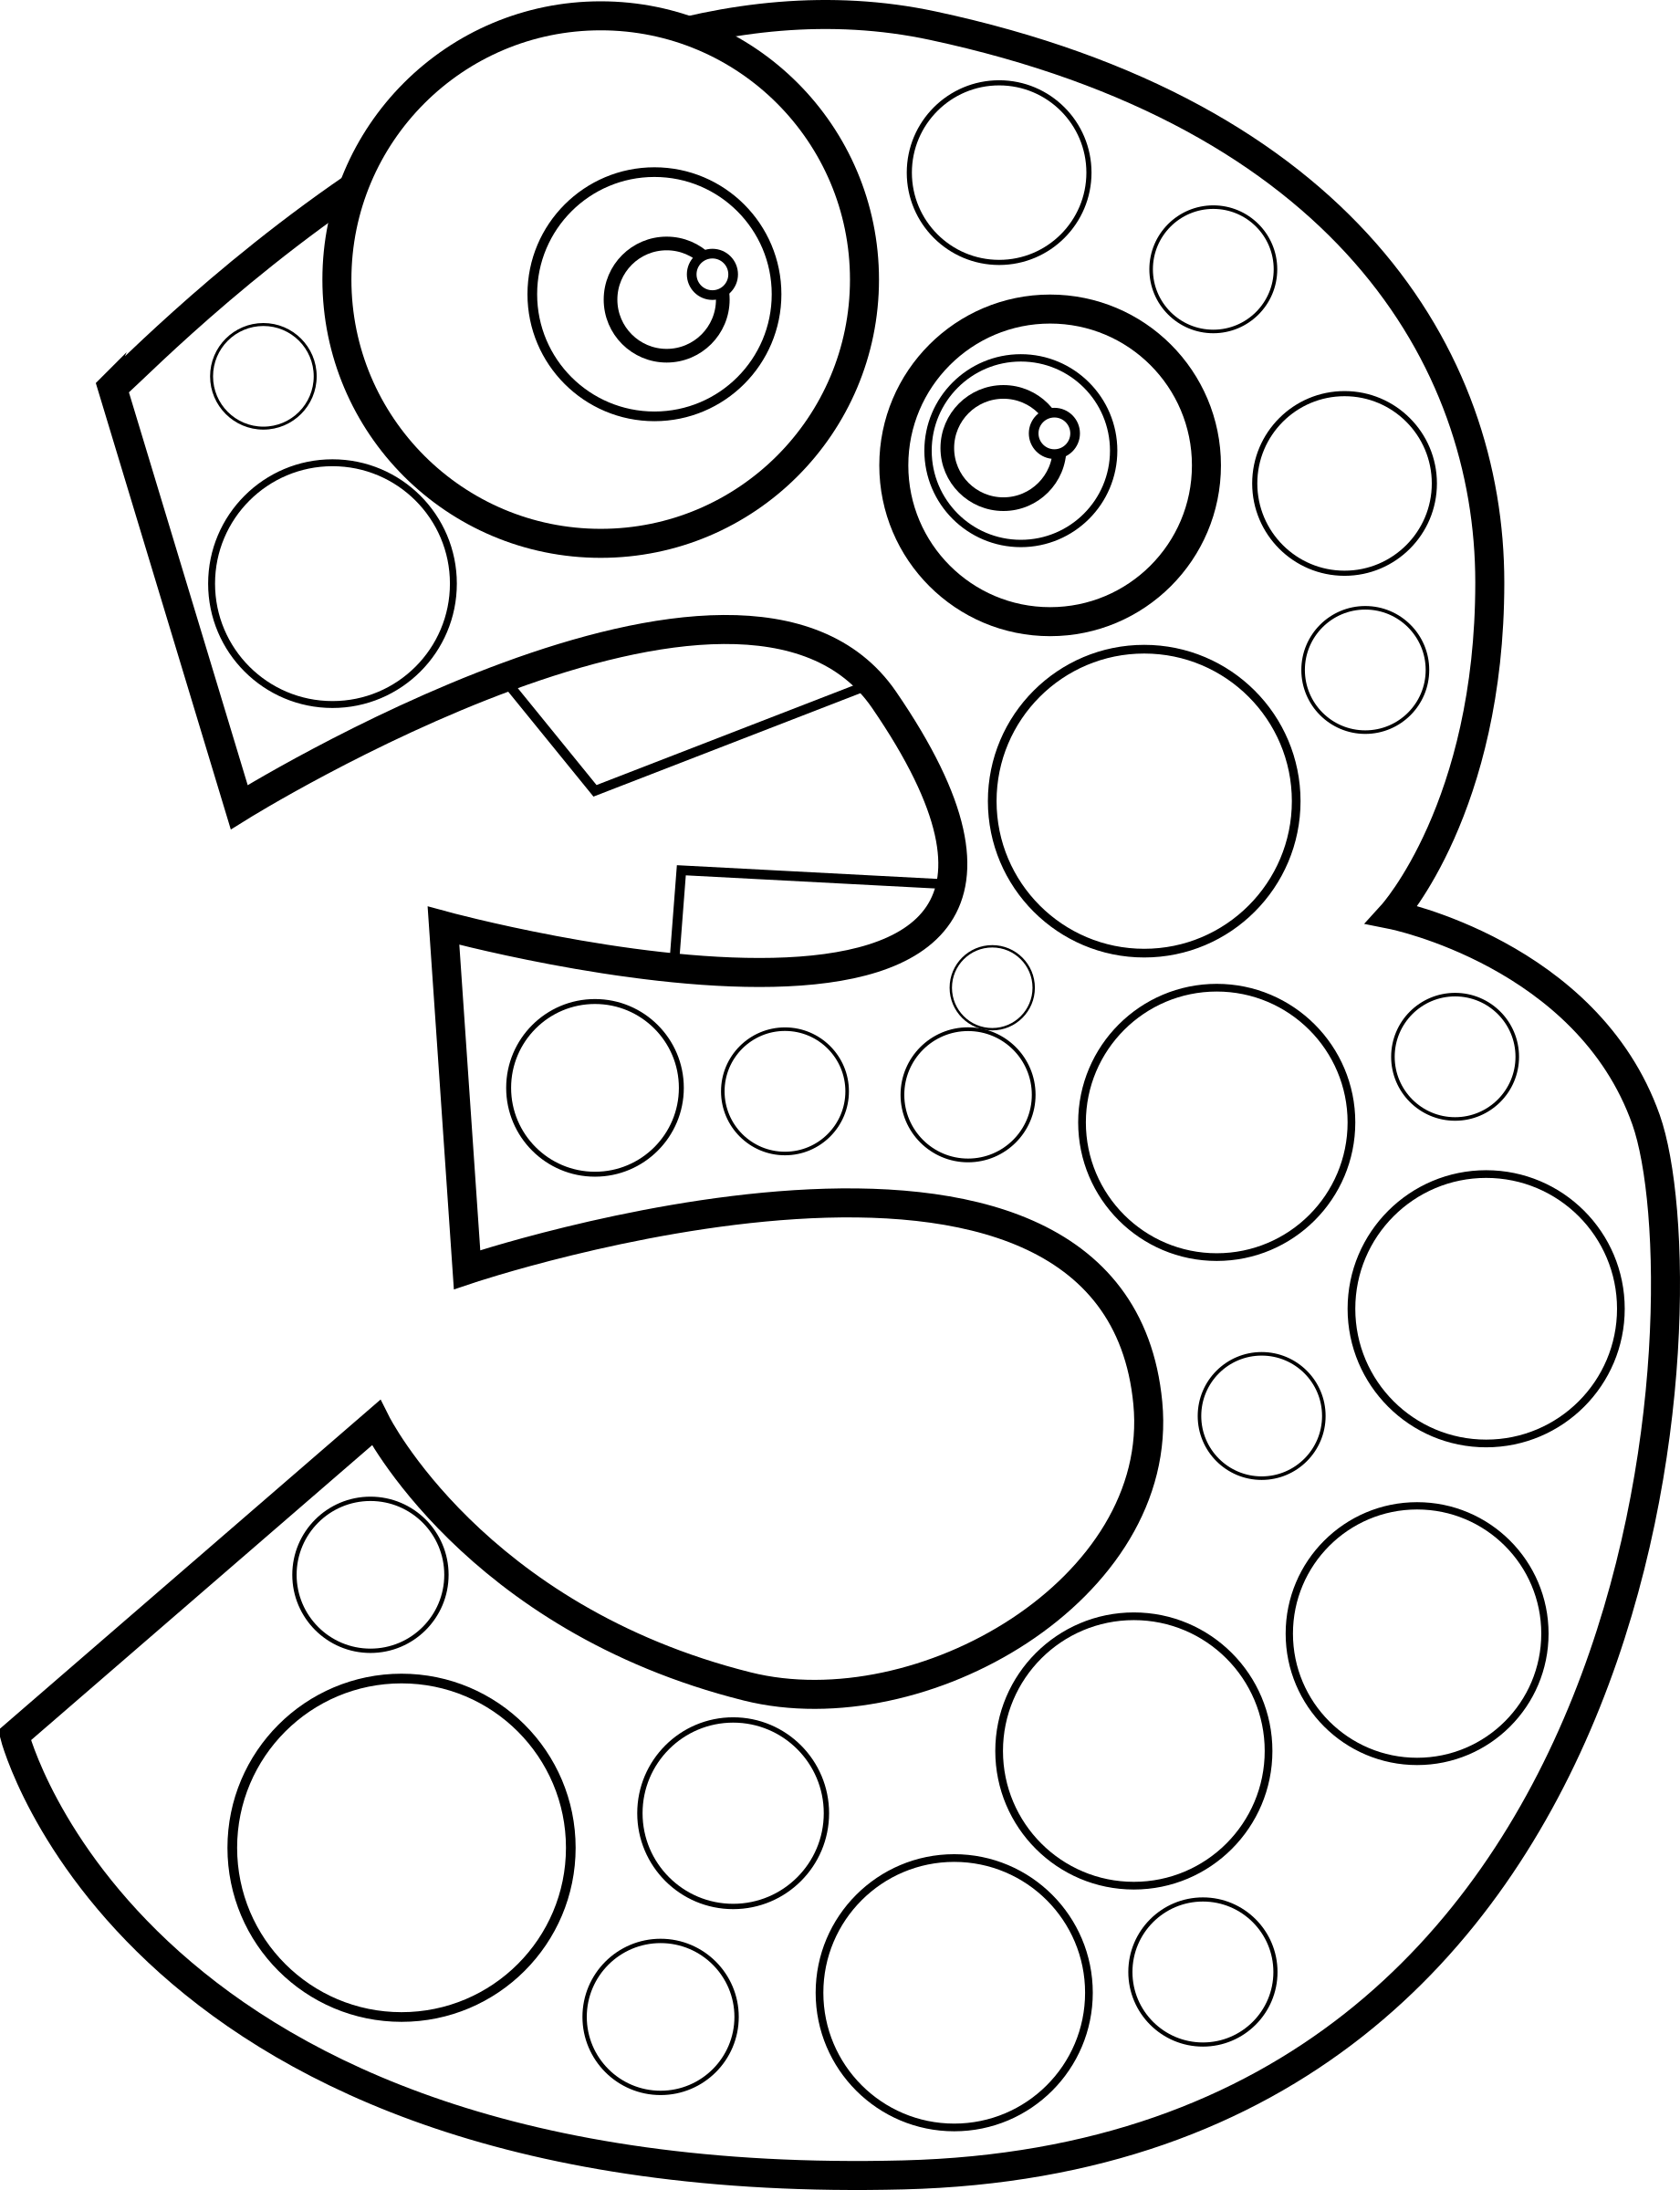 Number three lineart big. 3 clipart animal